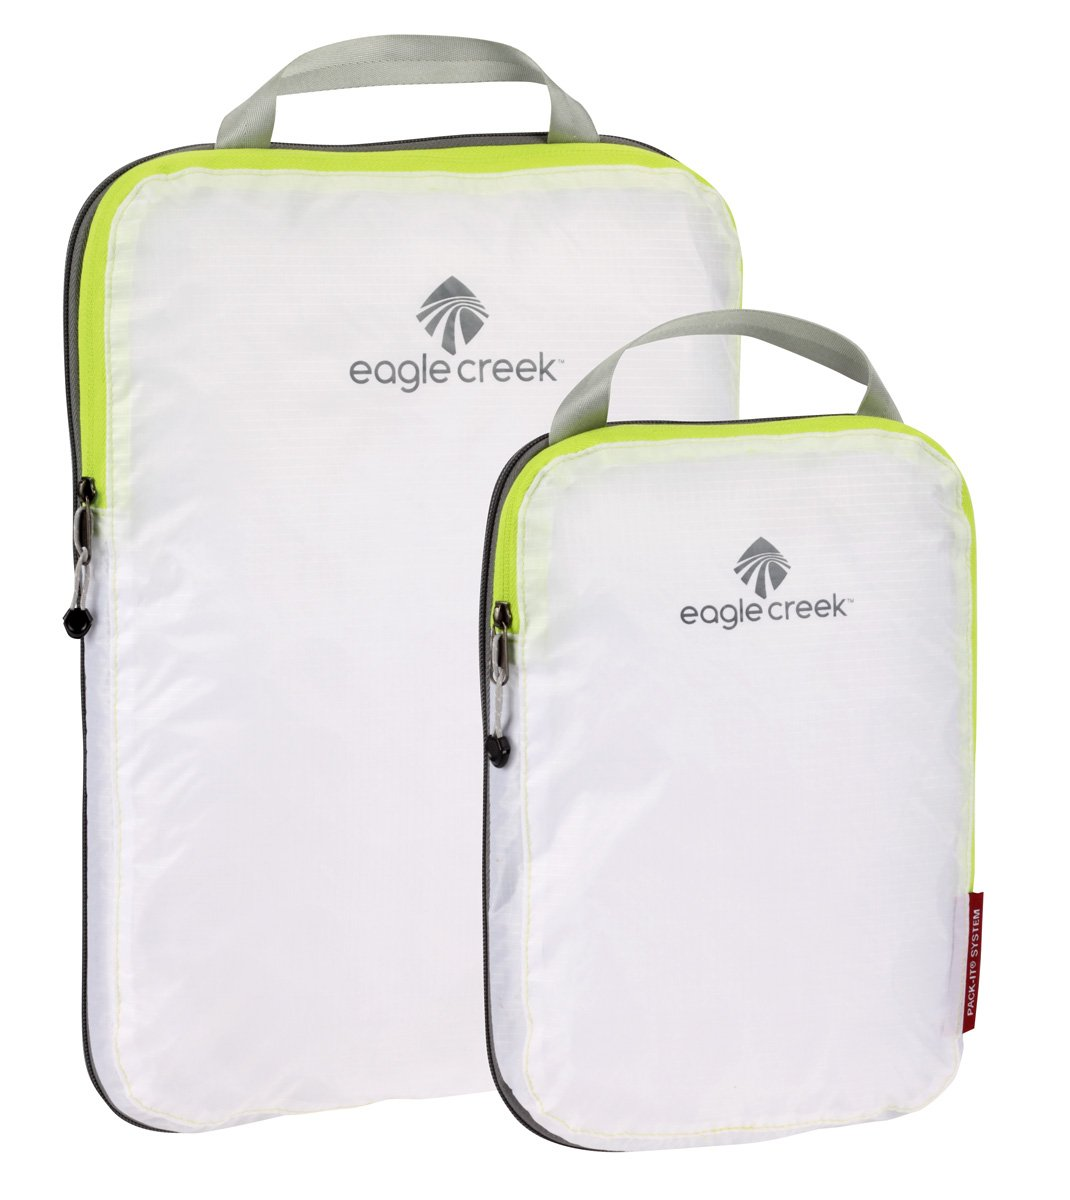 Eagle Creek Pack-It Specter Compression Packing Cubes, White/Strobe, Set of 2 by Eagle Creek